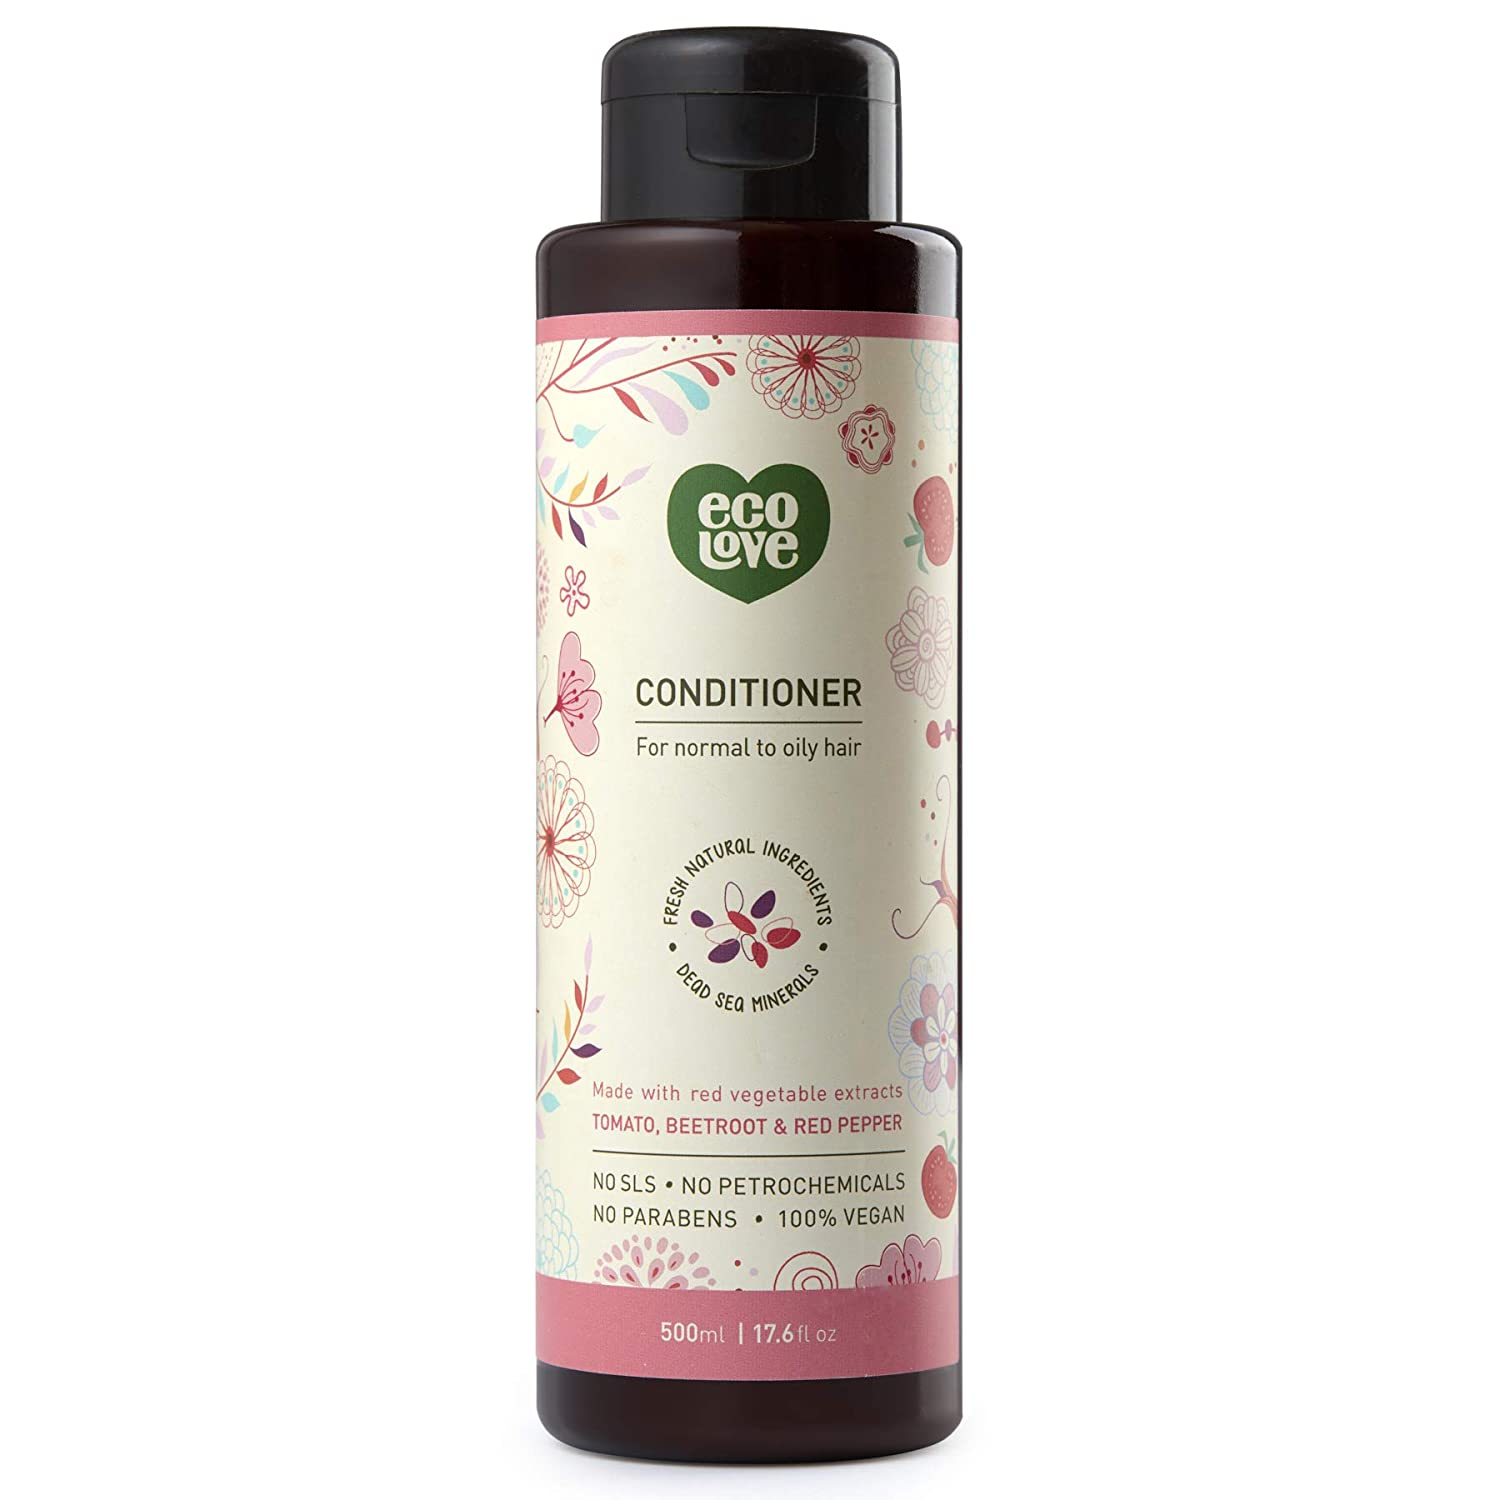 ecoLove Organic Conditioner for Normal to Oily Hair